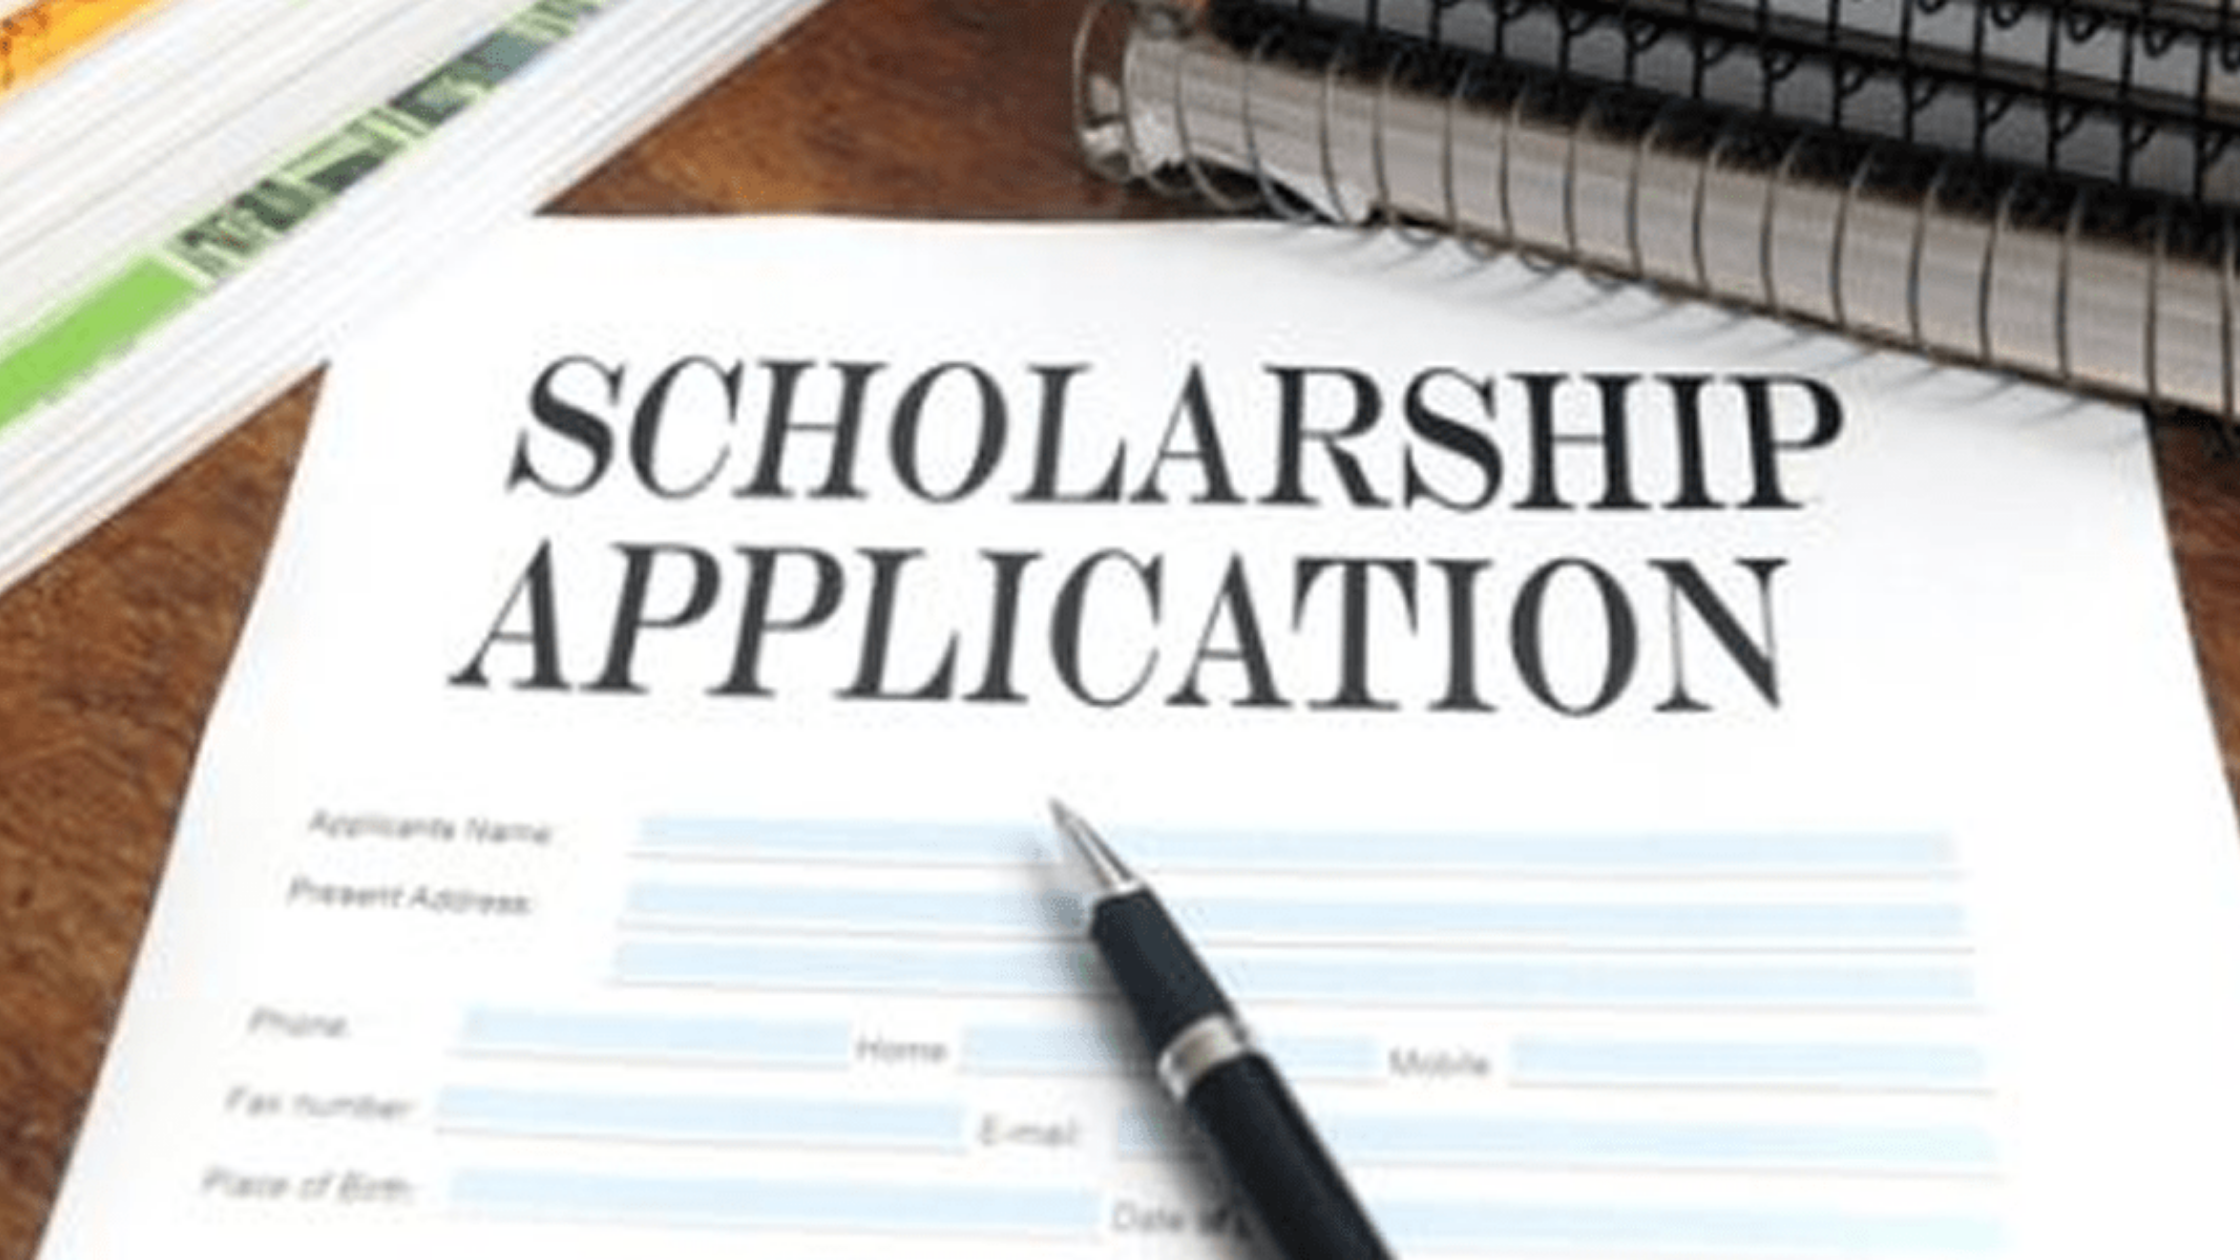 Documents needed for scholarship application 2020